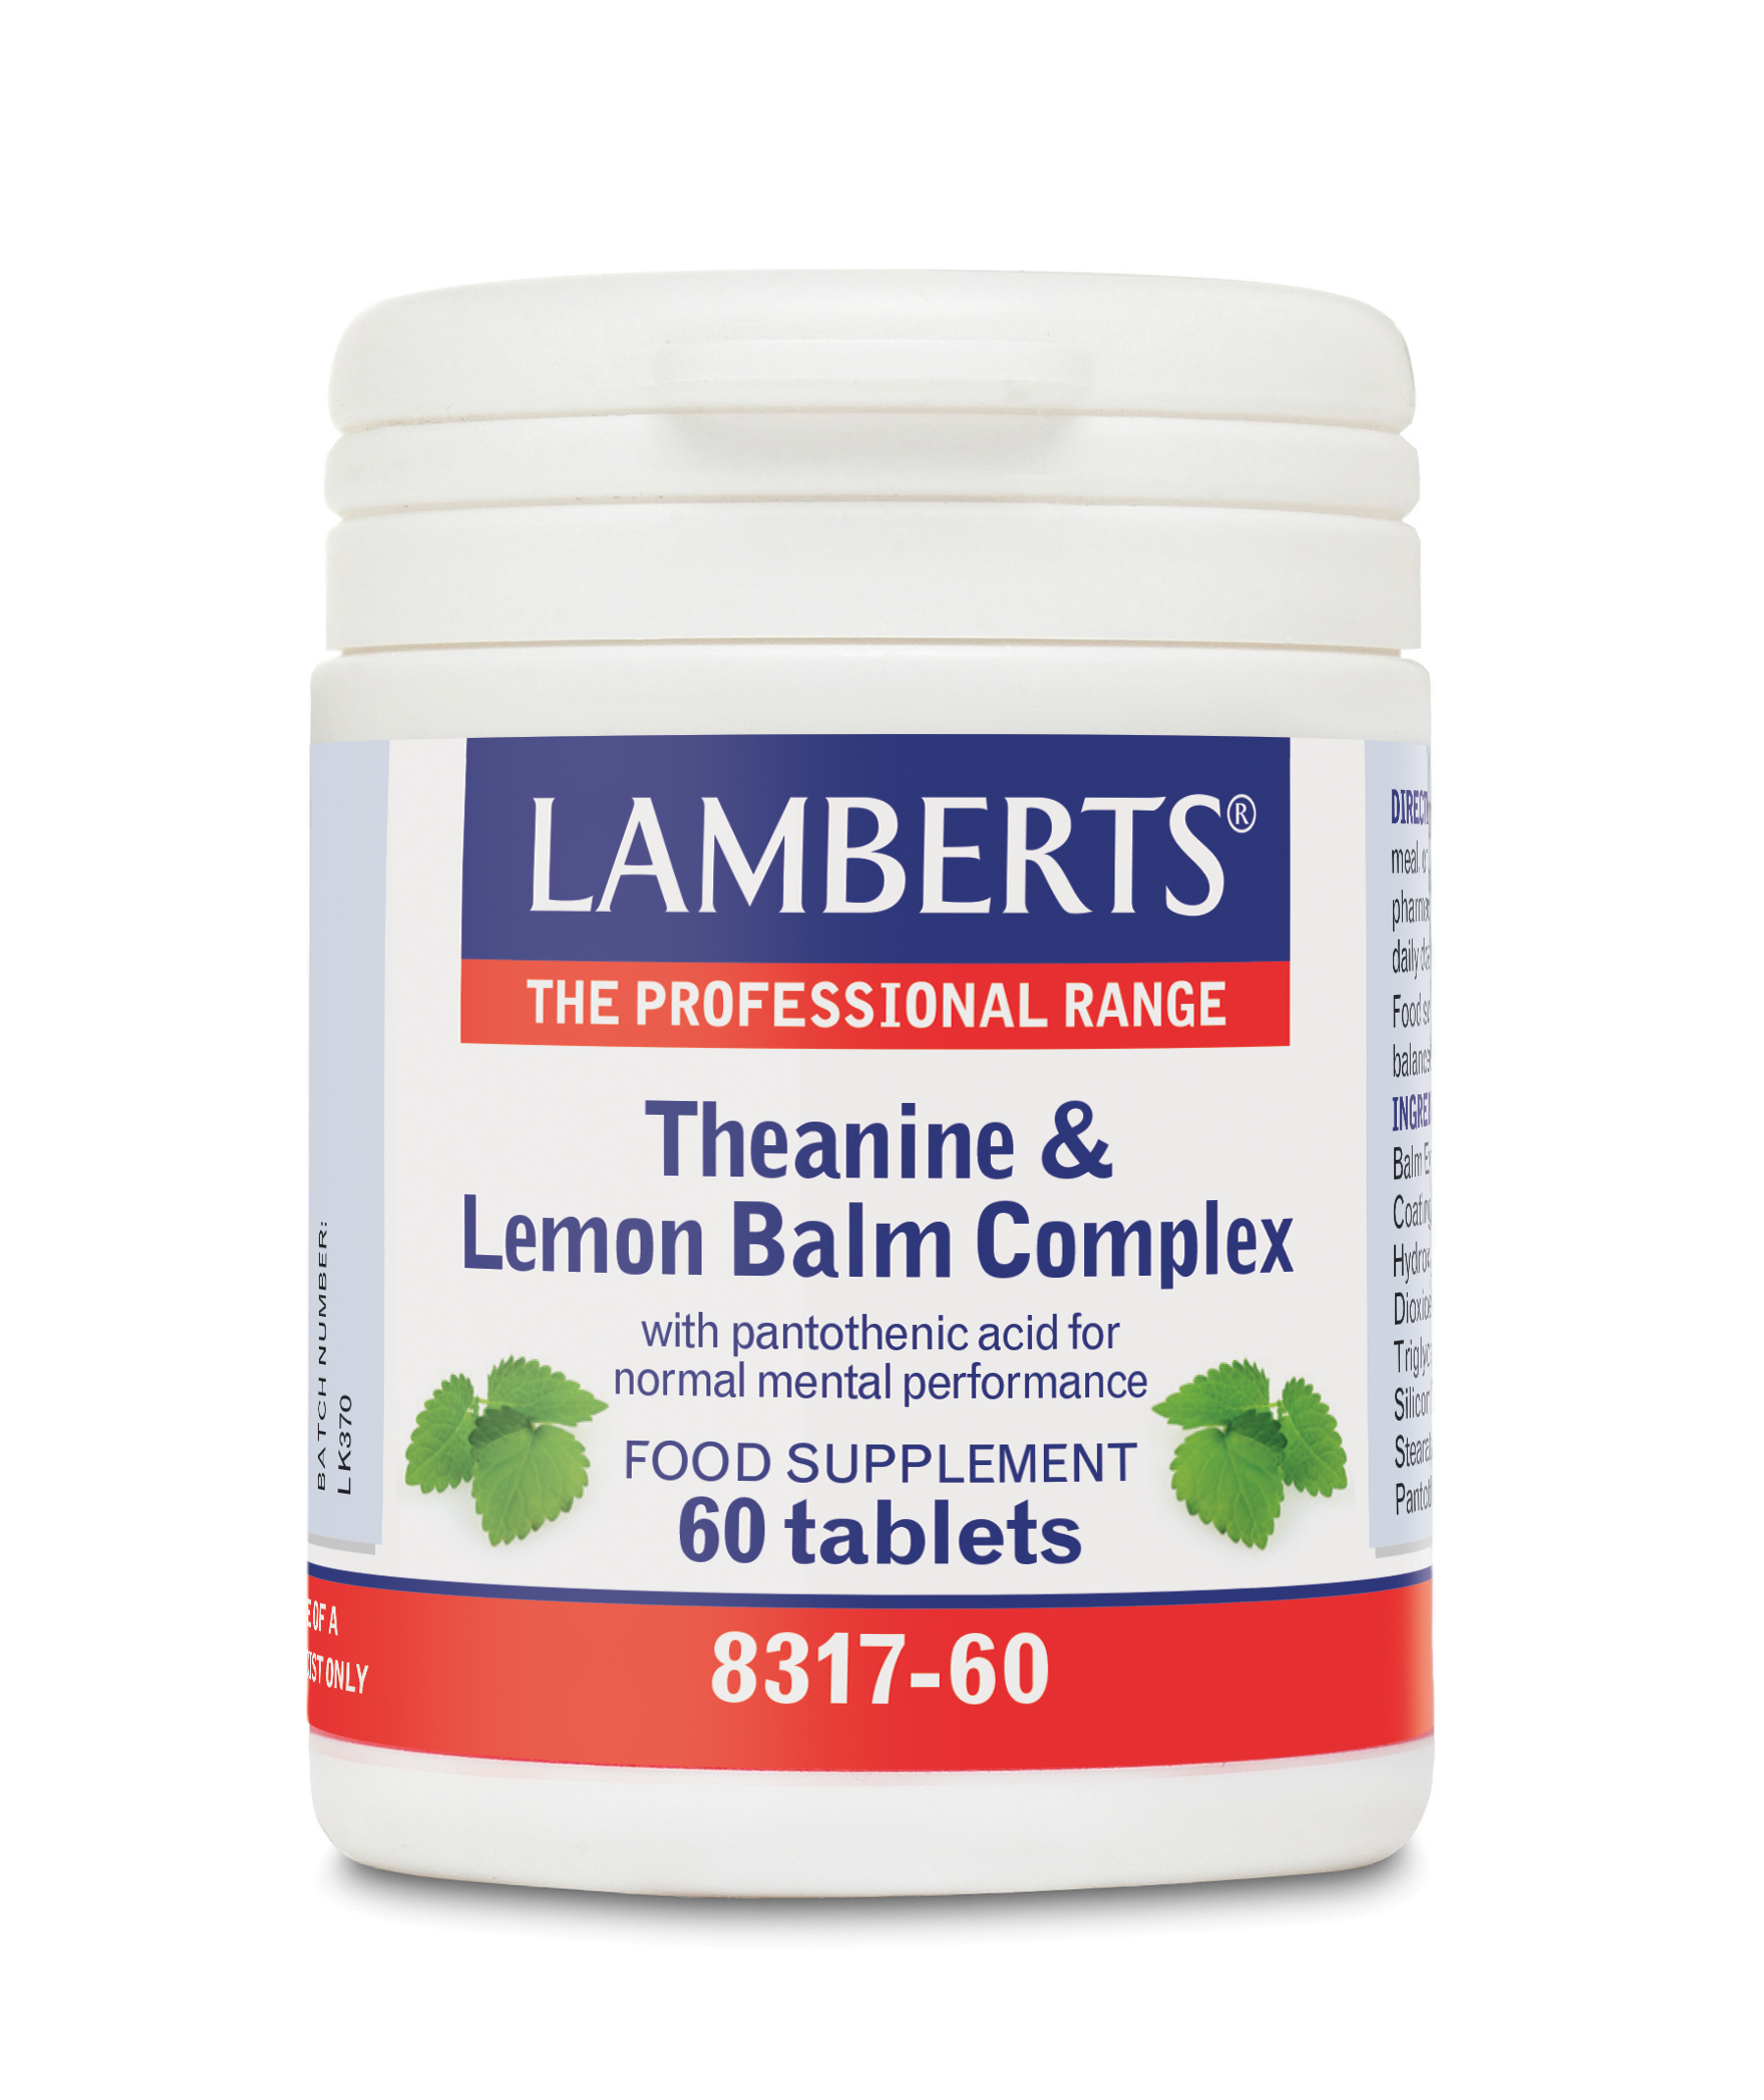 Lamberts Theanine & Lemon Balm Complex 60tbs